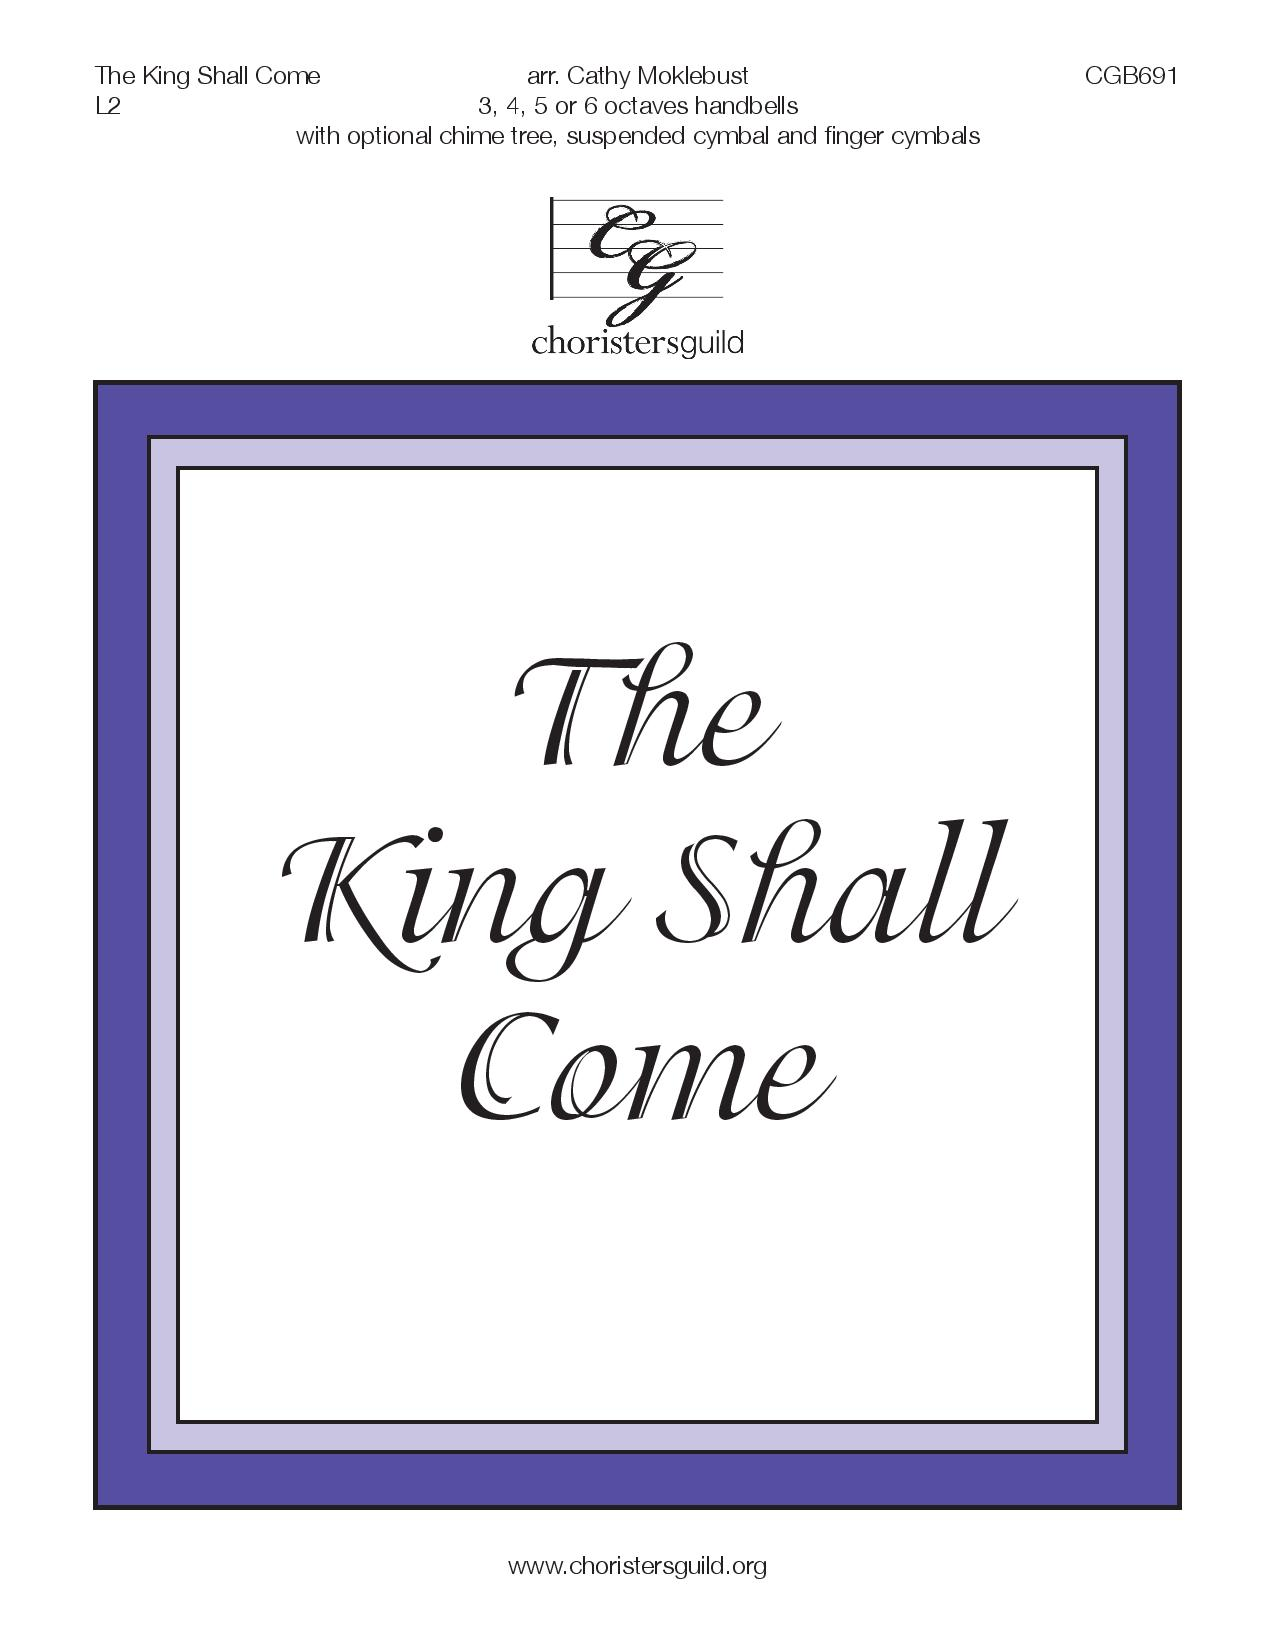 The King Shall Come (3, 4, 5 or 6 octaves)